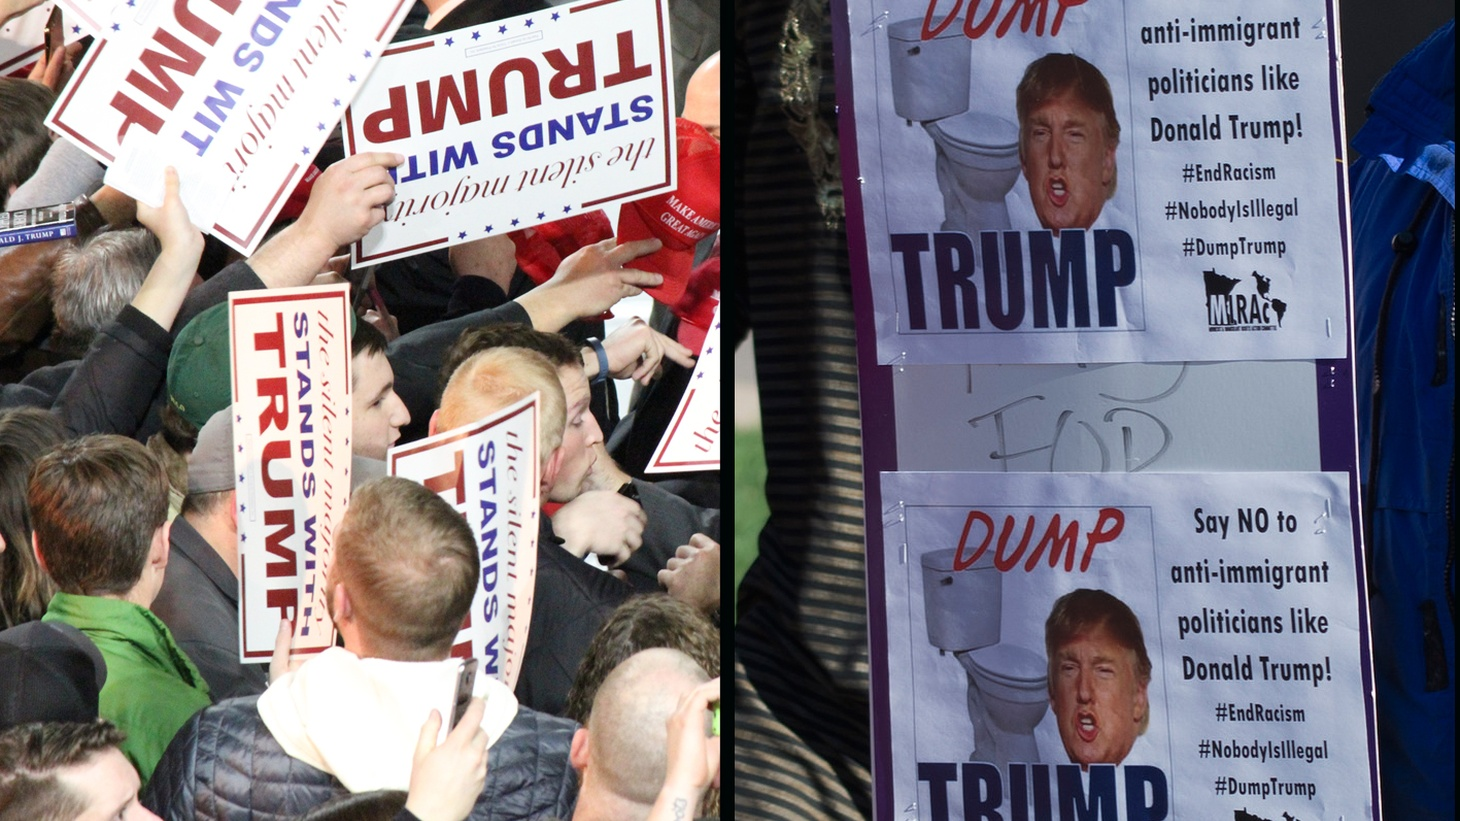 Donald Trump may or may not be America's next president, but there's no doubt his outrageous campaign has struck a chord with millions of Americans. We hear different theories of how Trump Nation came to be and what it means for the future.